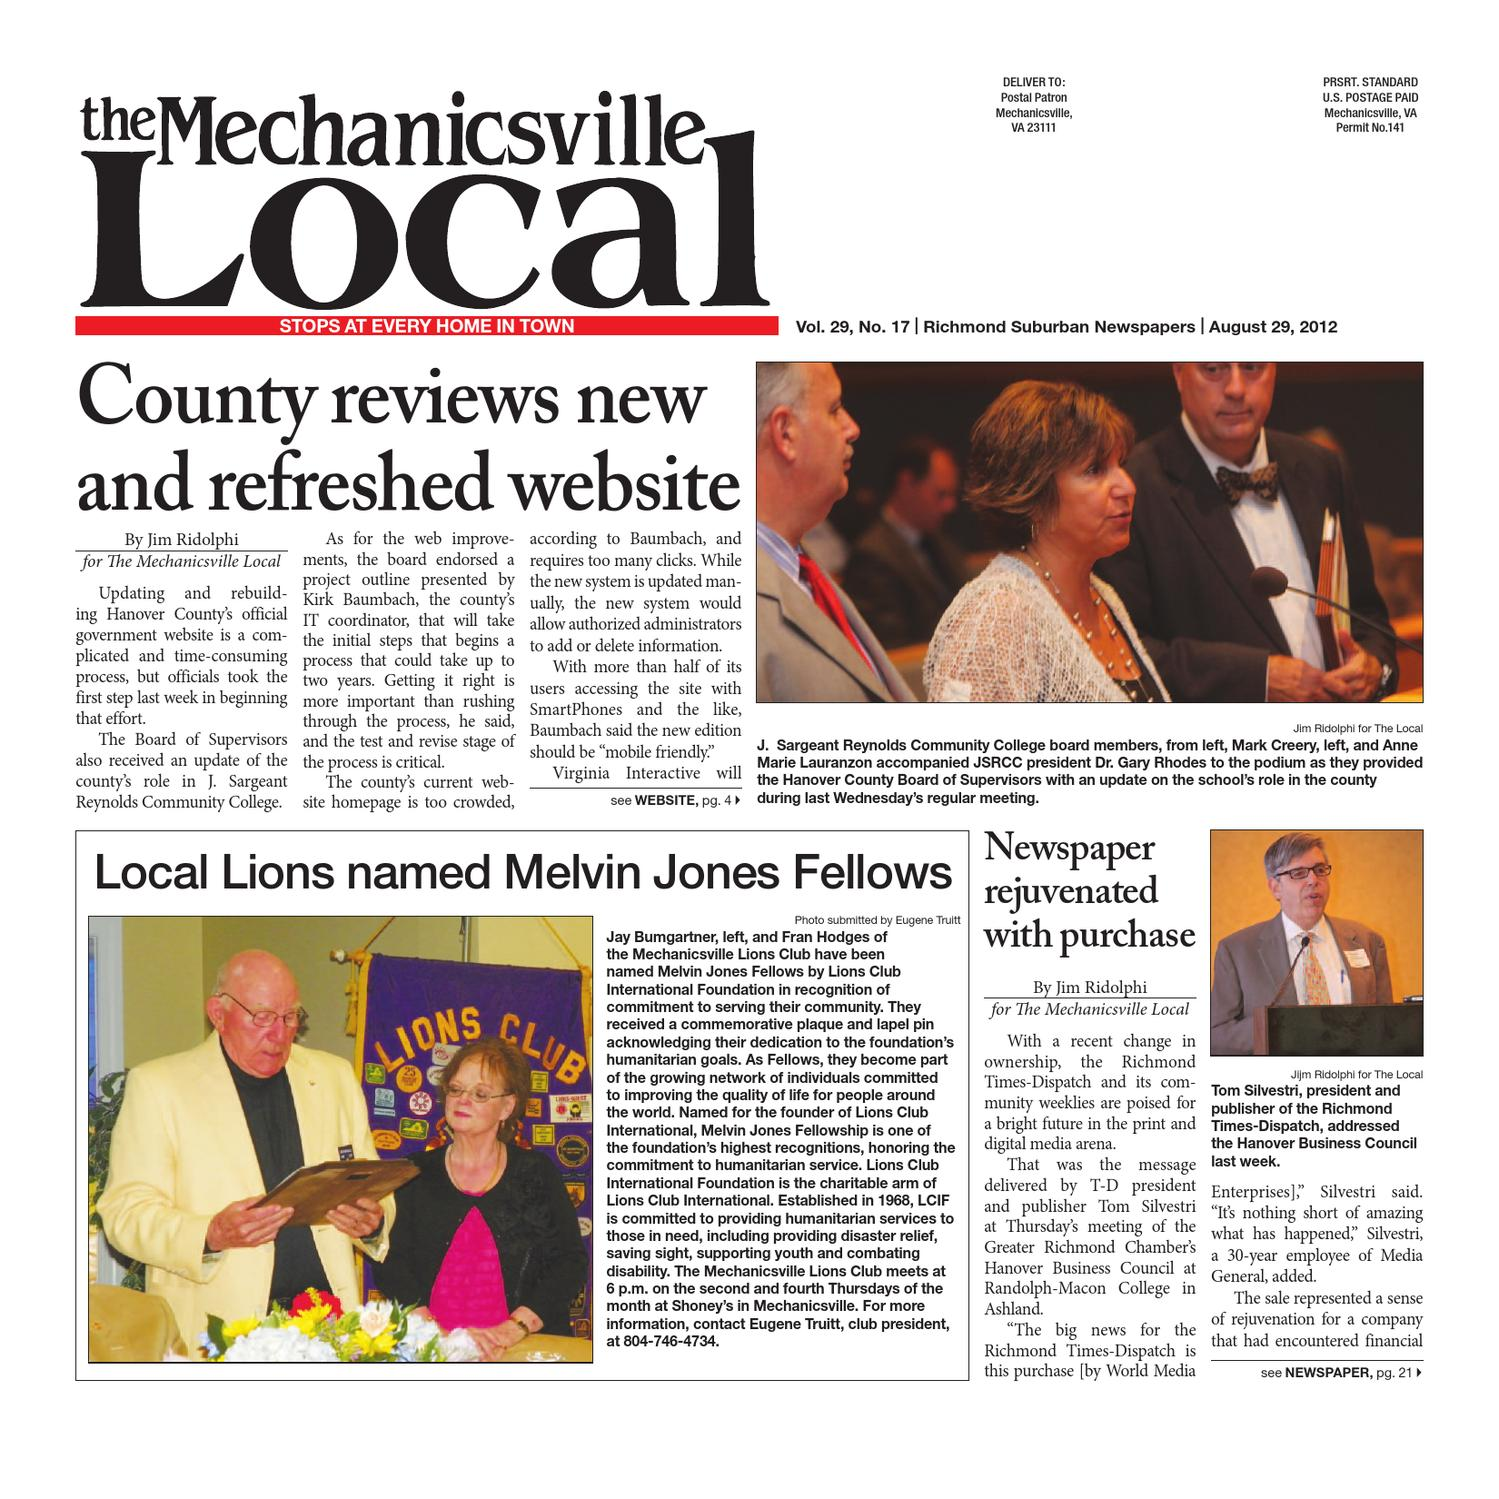 ae6cb7297 08/29/2012 by The Mechanicsville Local - issuu